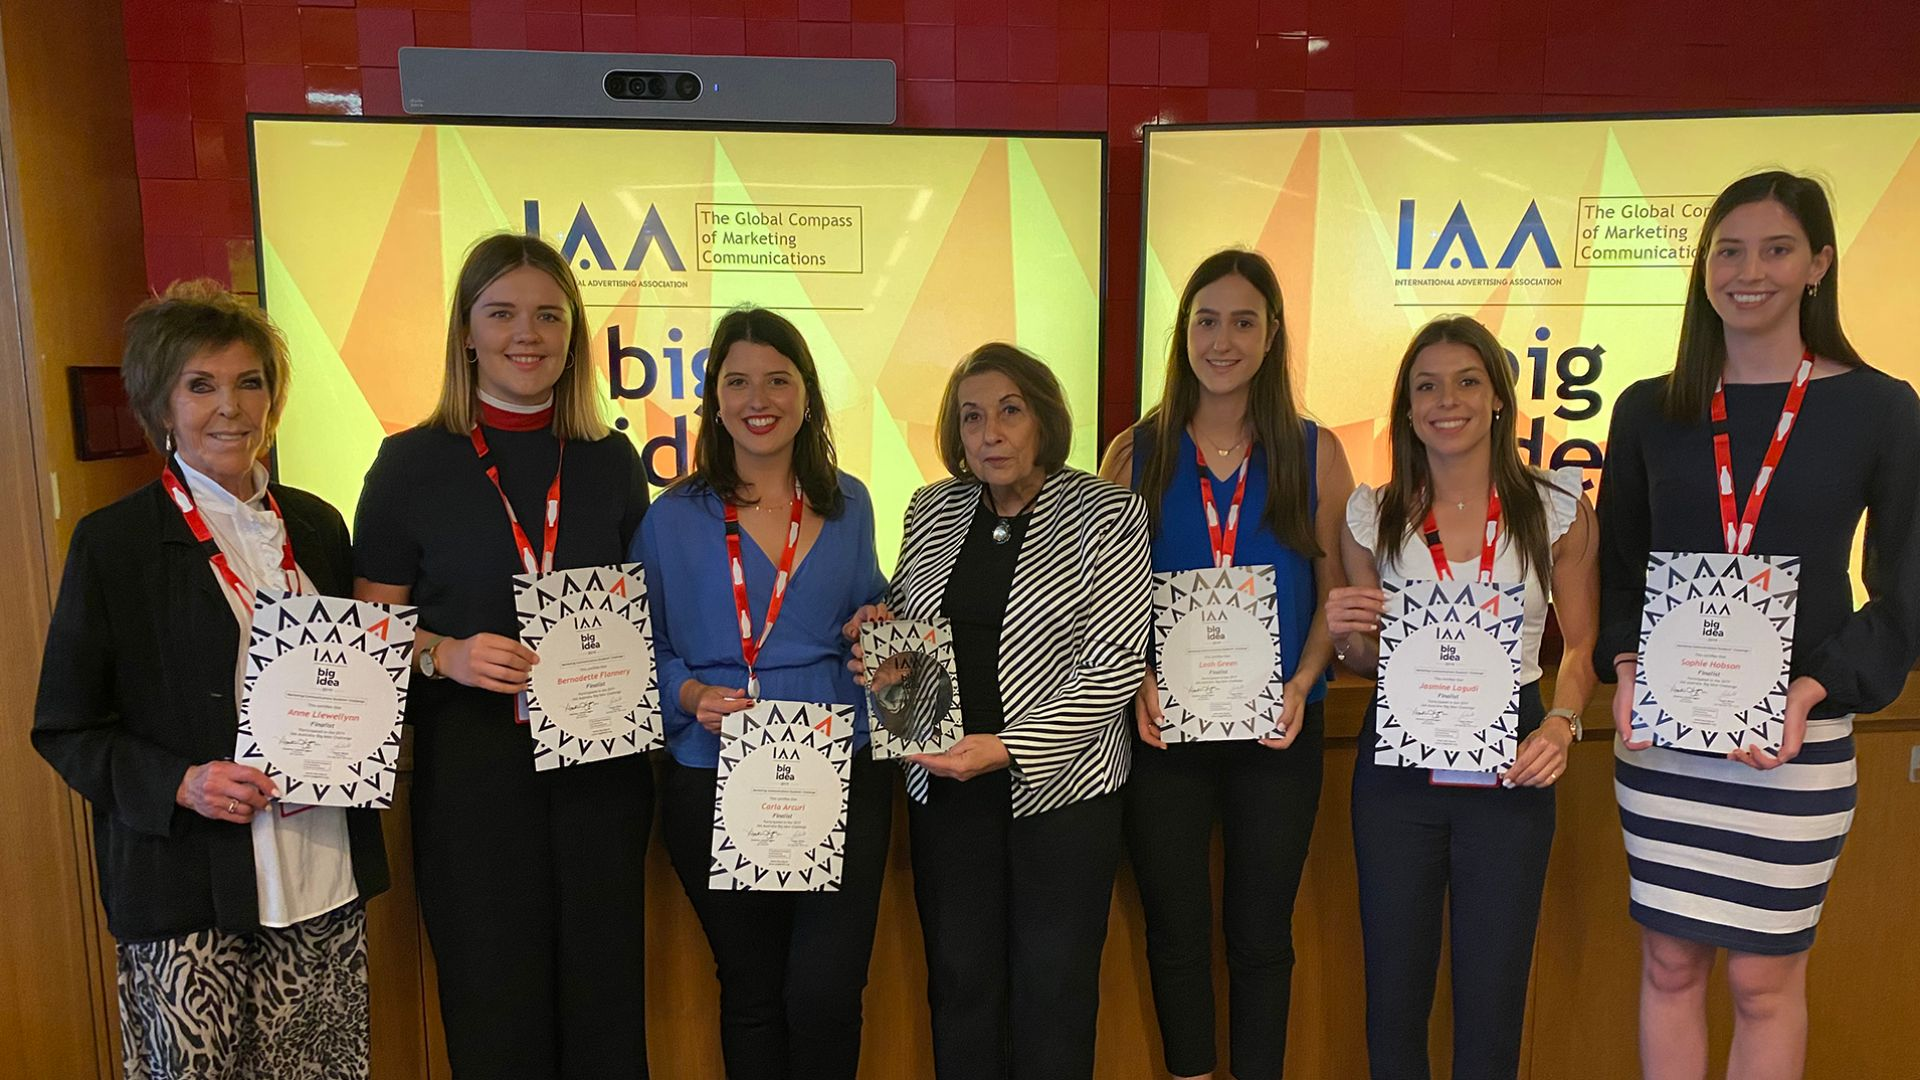 Charles Sturt advertising students win 13th 'National Champions' title